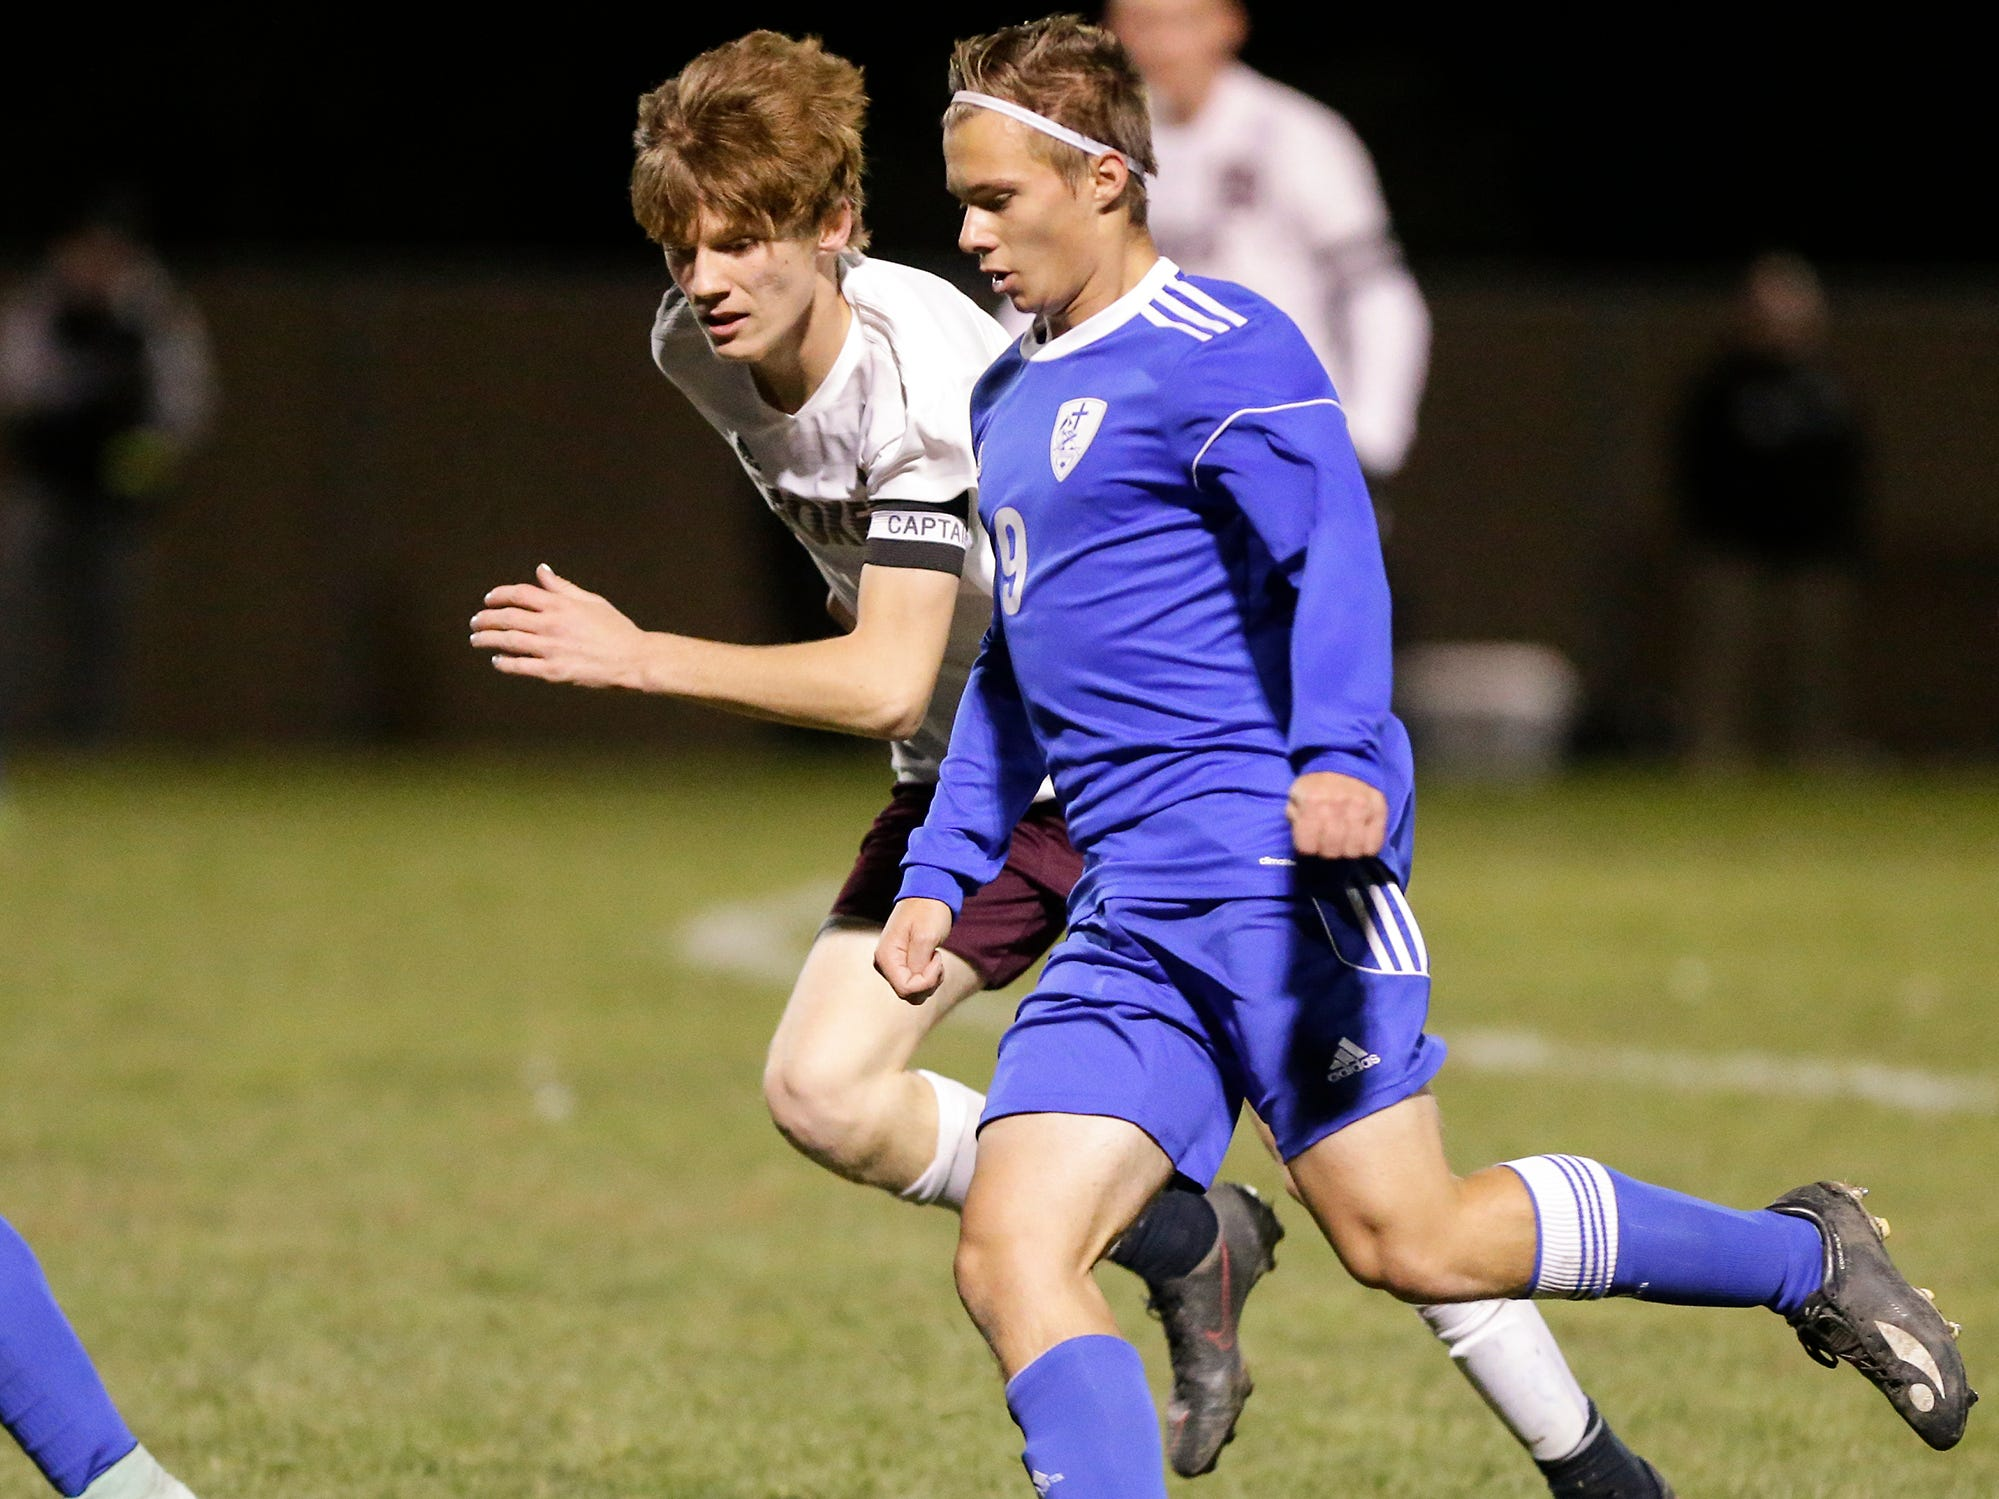 Winnebago Lutheran Academy soccer's Kaleb Schroeder kicks the ball down field against Omro High School's Garrett Ellis during their WIAA regional playoff game Thursday, October 18, 2018 in Fond du Lac, Wisconsin. Doug Raflik/USA TODAY NETWORK-Wisconsin